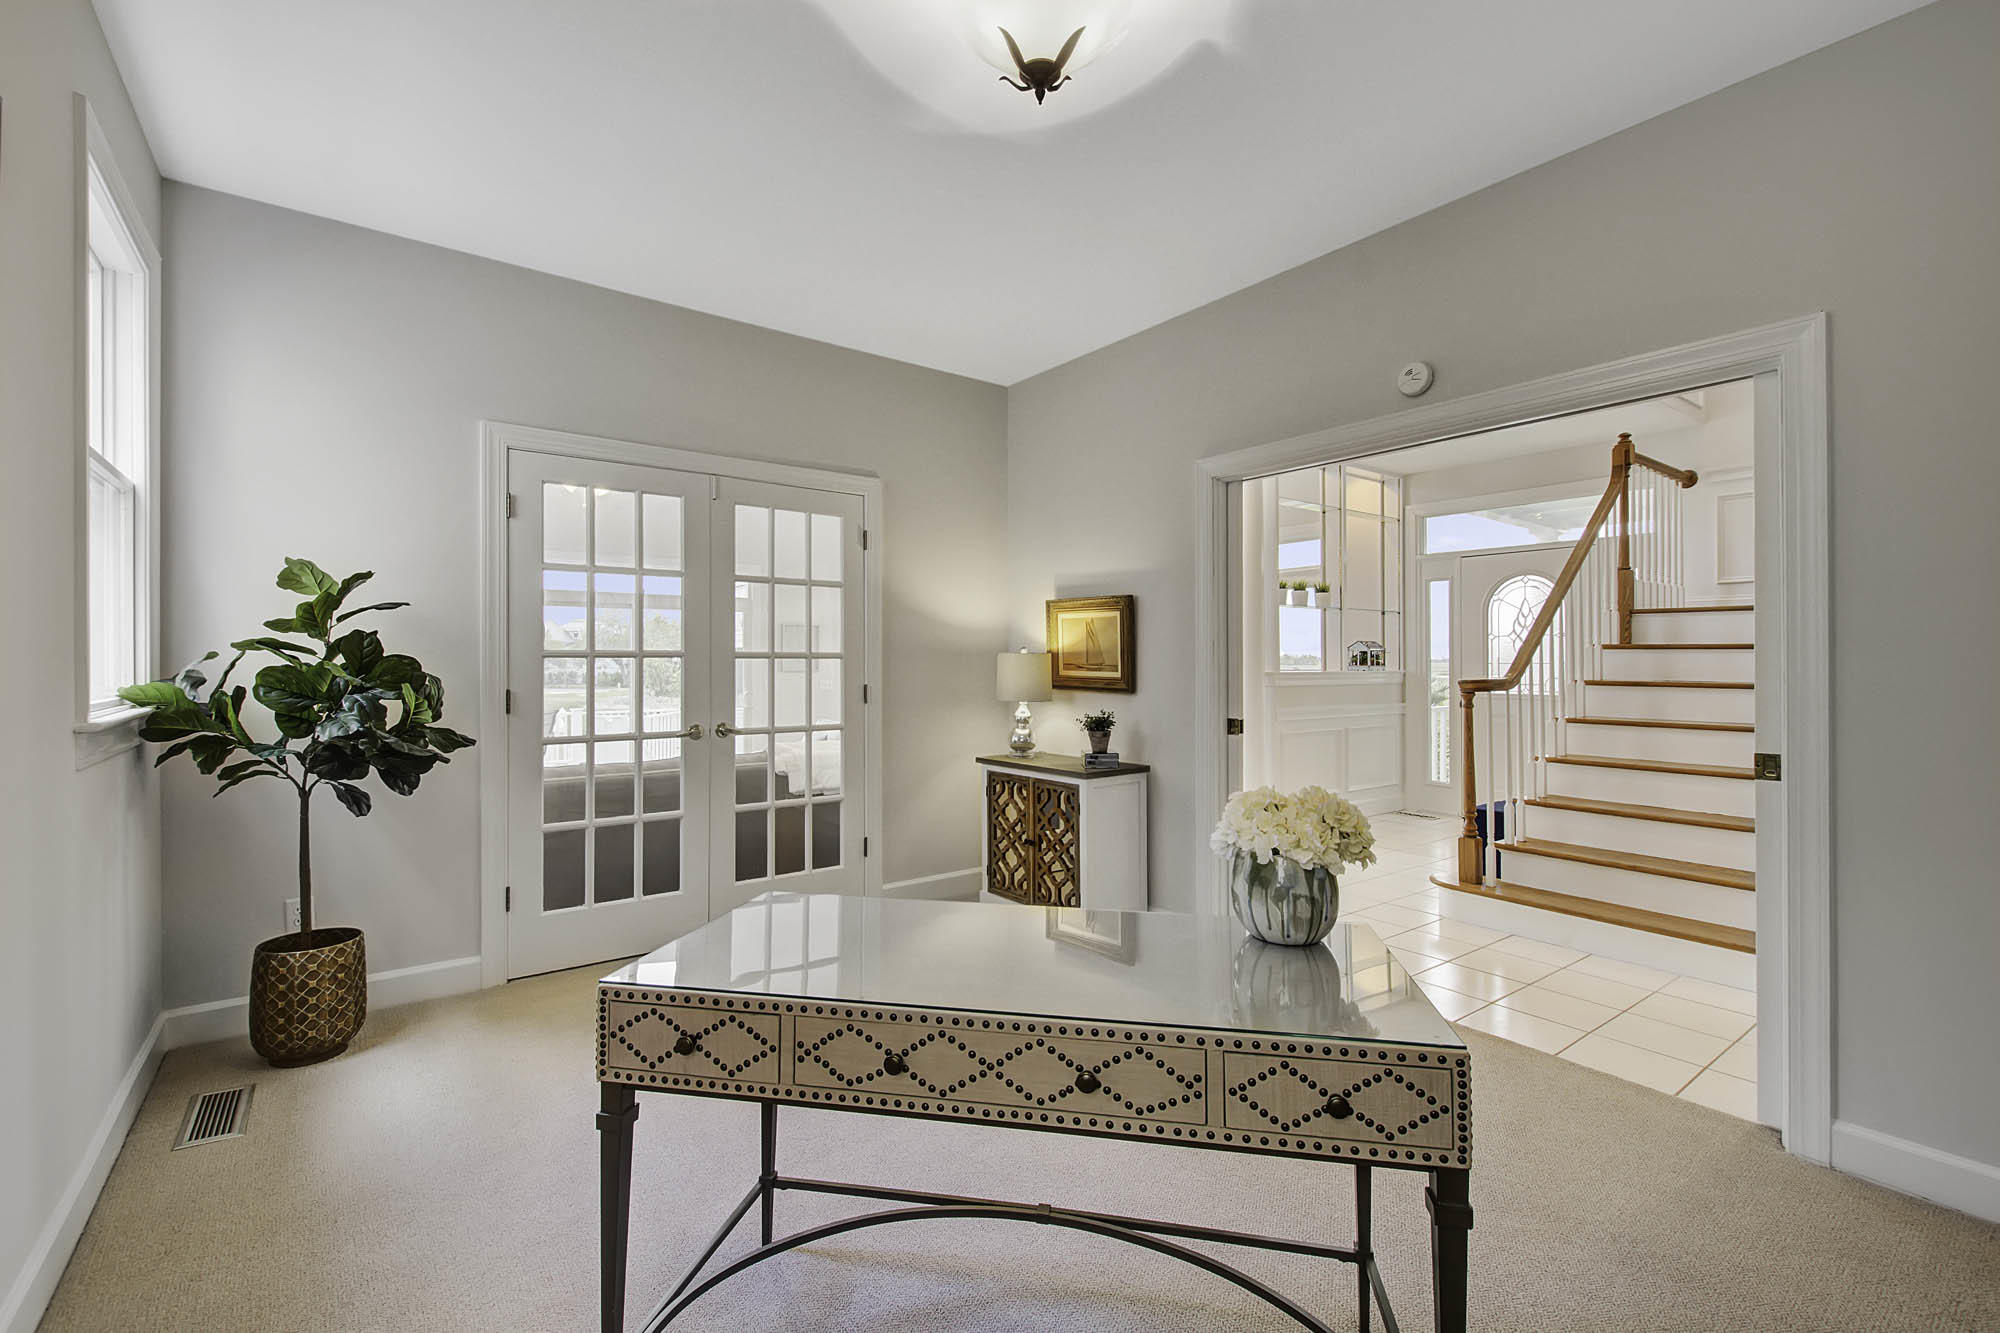 Wild Dunes Homes For Sale - 17 Morgan Place, Isle of Palms, SC - 24